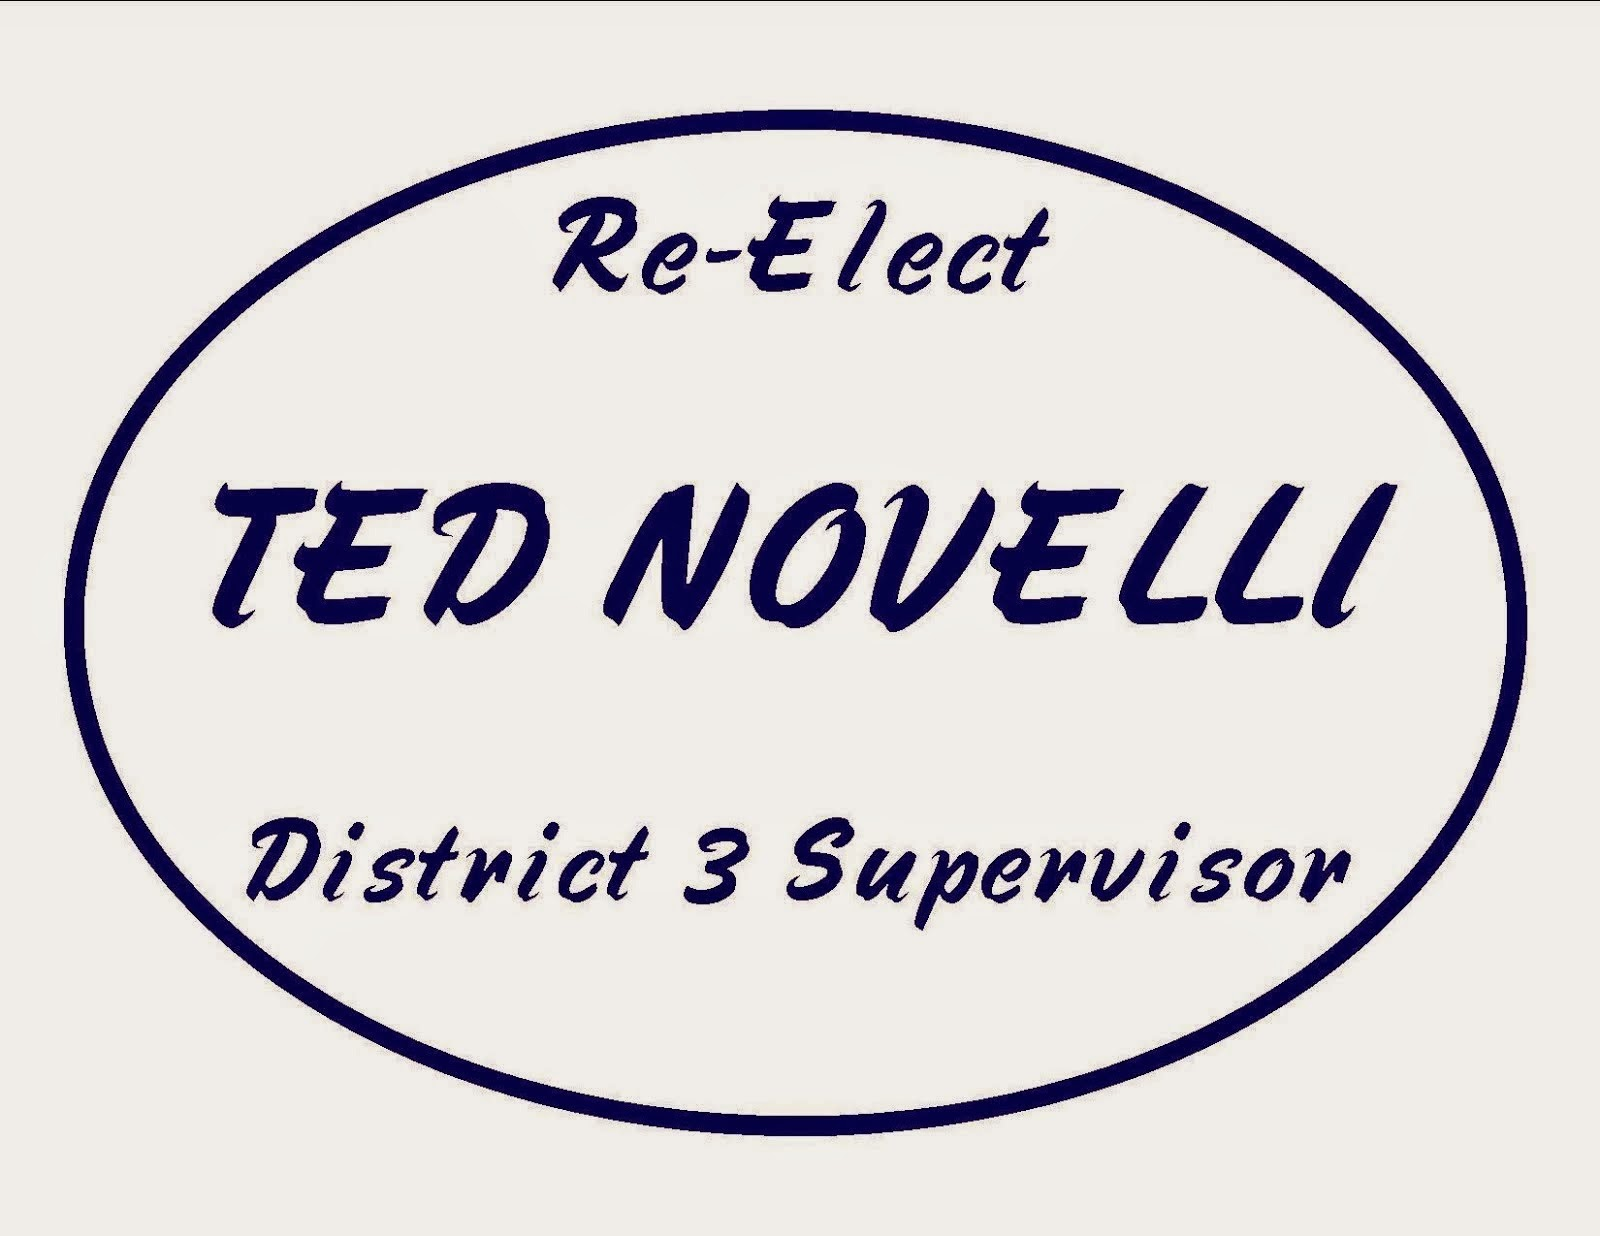 Re-elect Ted Novelli - District 3 Supervisor